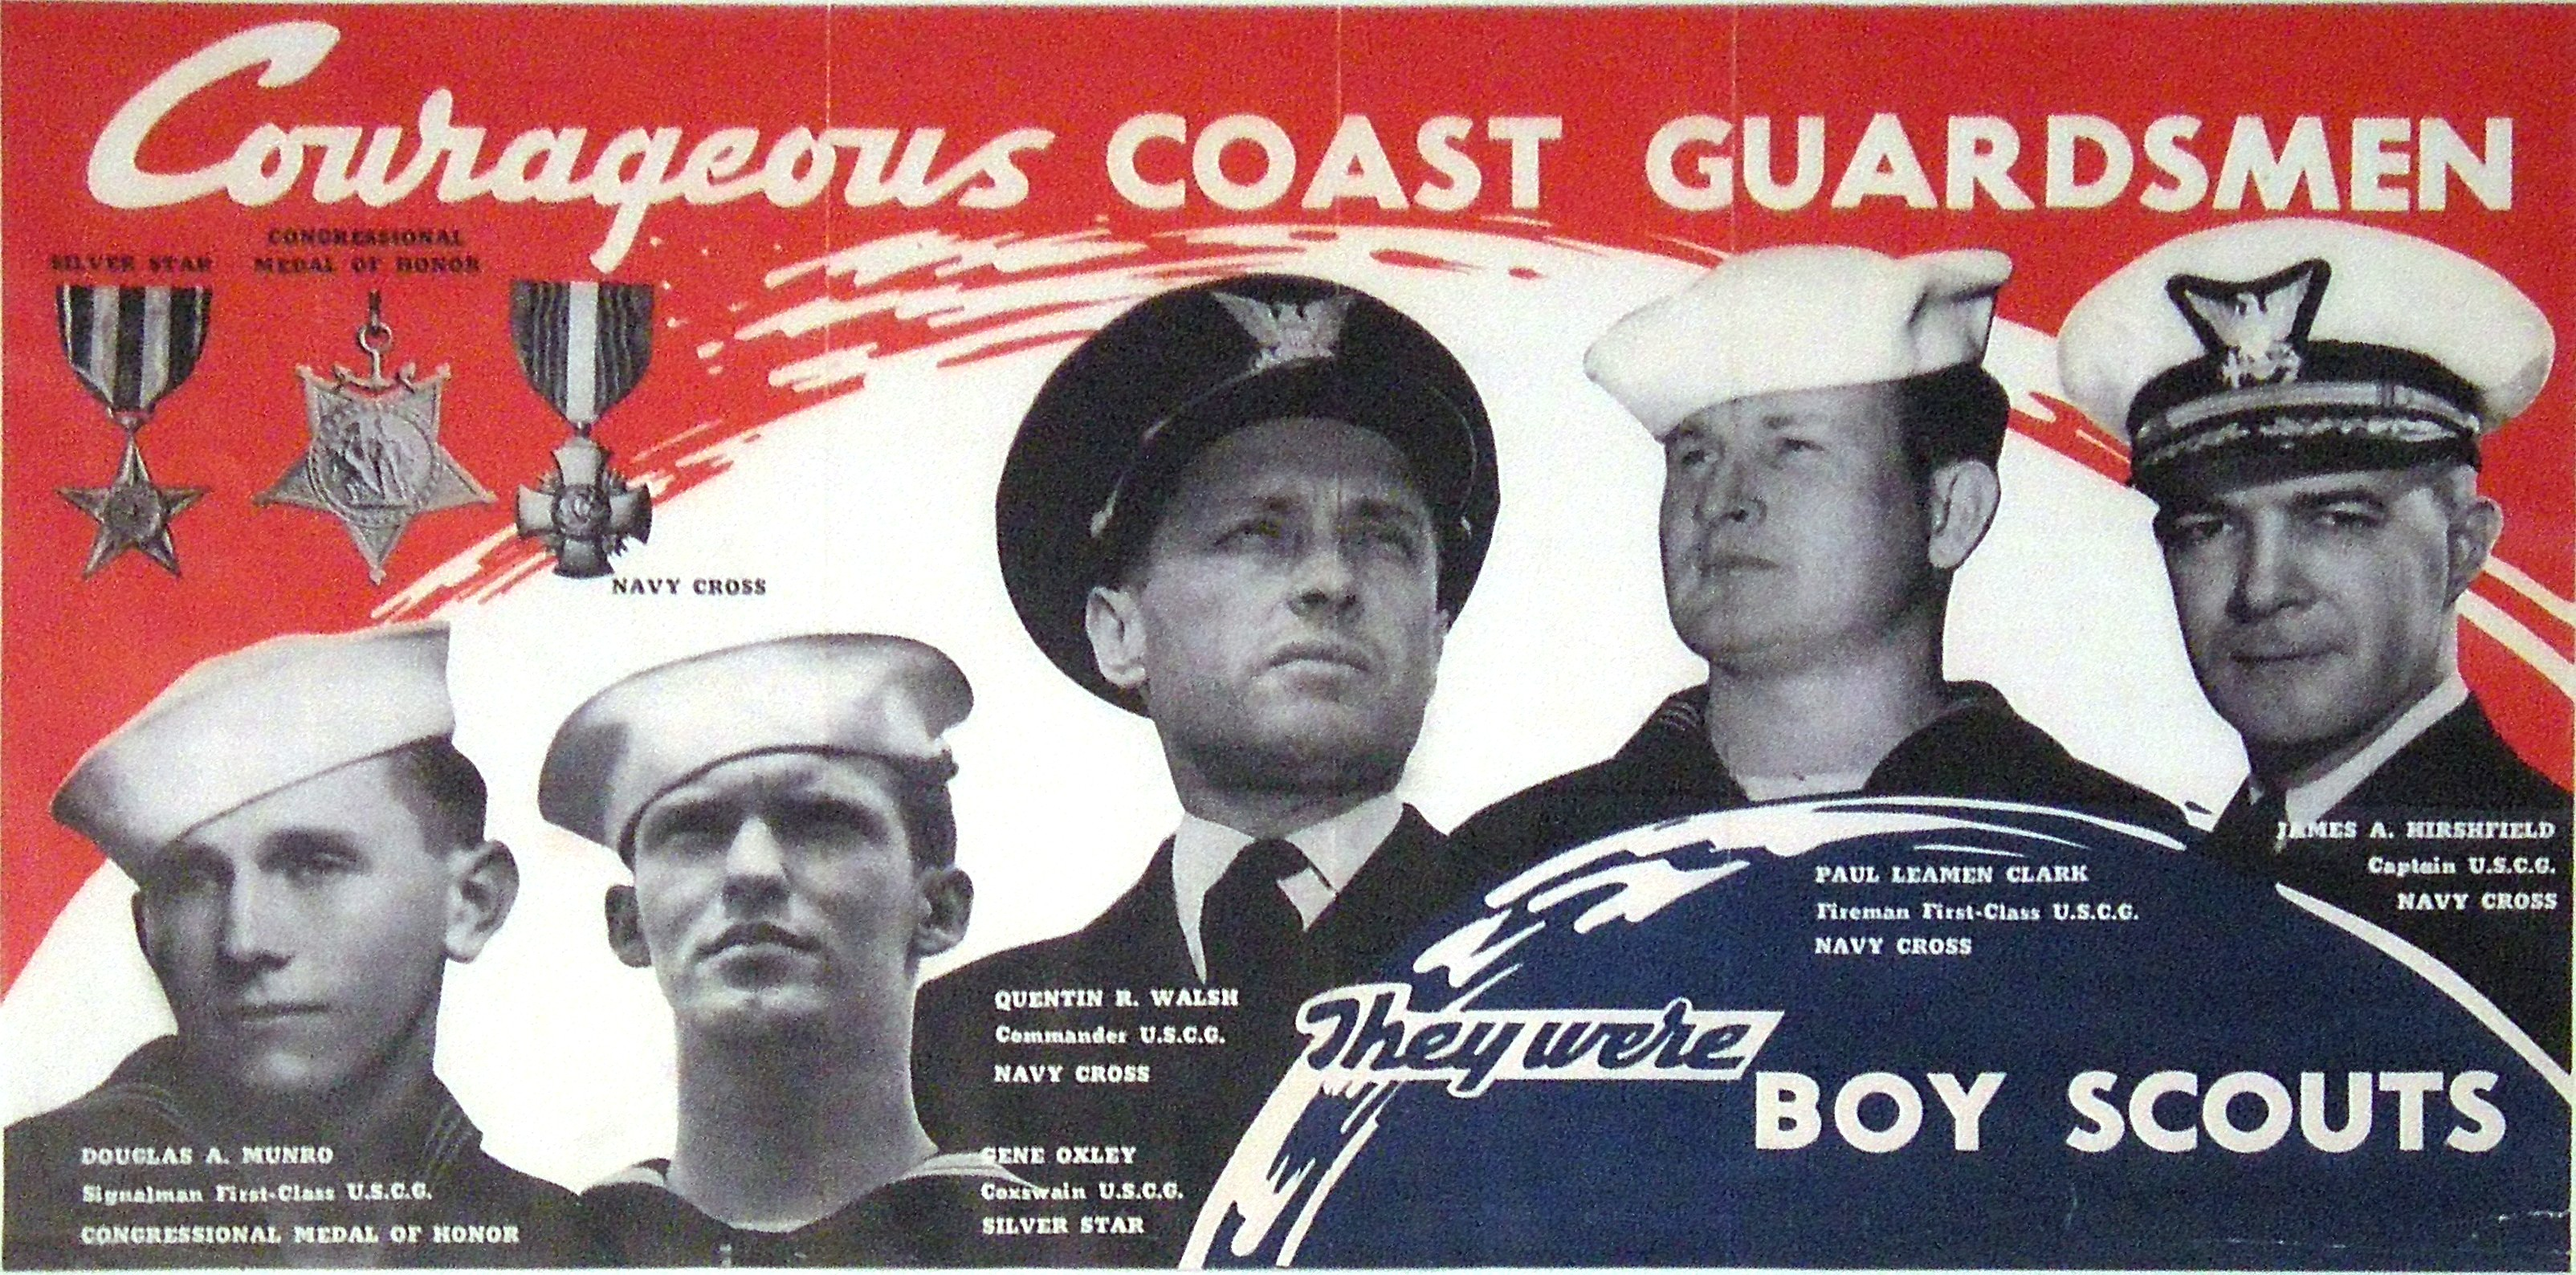 File:Courageous Coast Guardsmen poster jpg - Wikimedia Commons